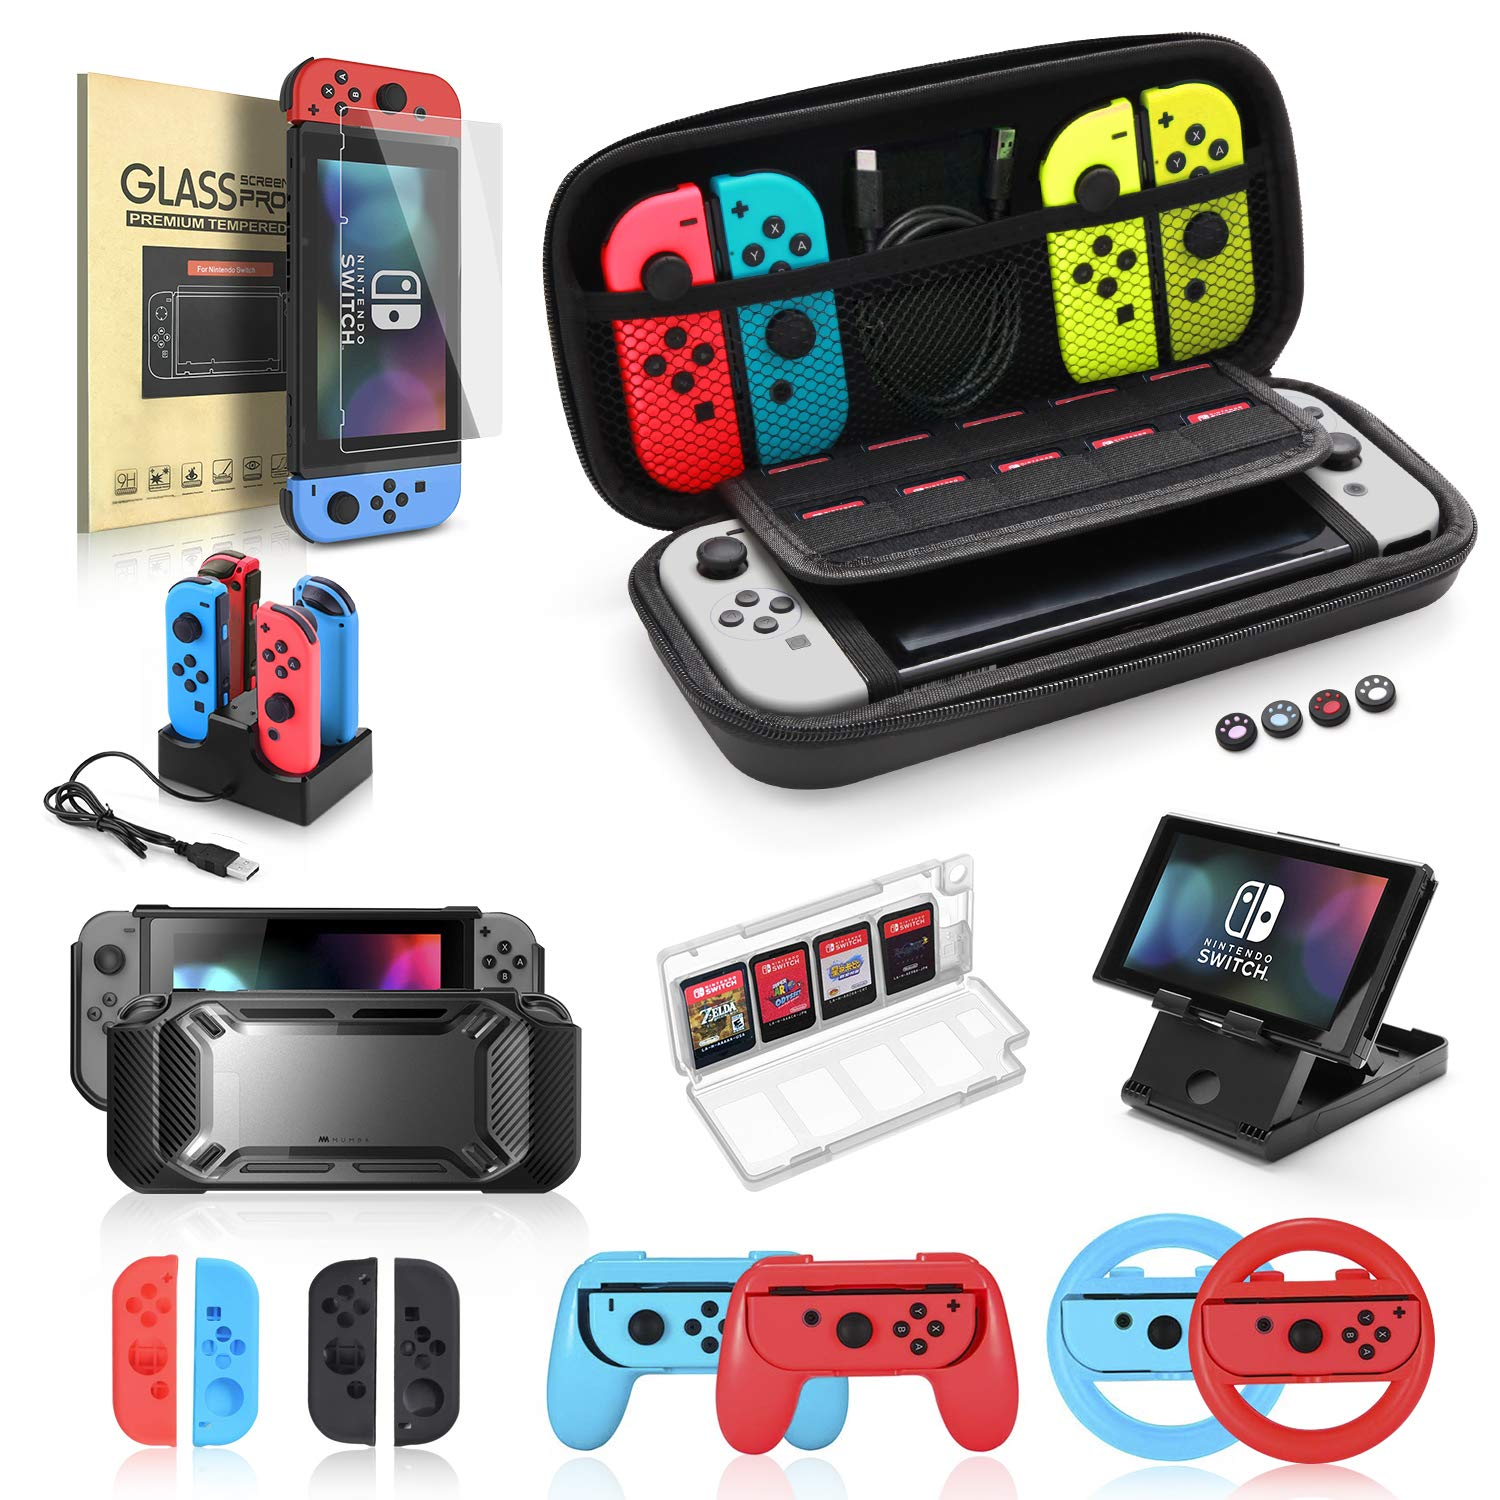 Nintendo Switch Accessories Bundle, 19 in 1 Essential Kit Compatible for Switch Games, Includes Joy-Con Steering Wheel, Controller Grip, Screen Protector, Charging Dock, Carrying Case, and PlayStand